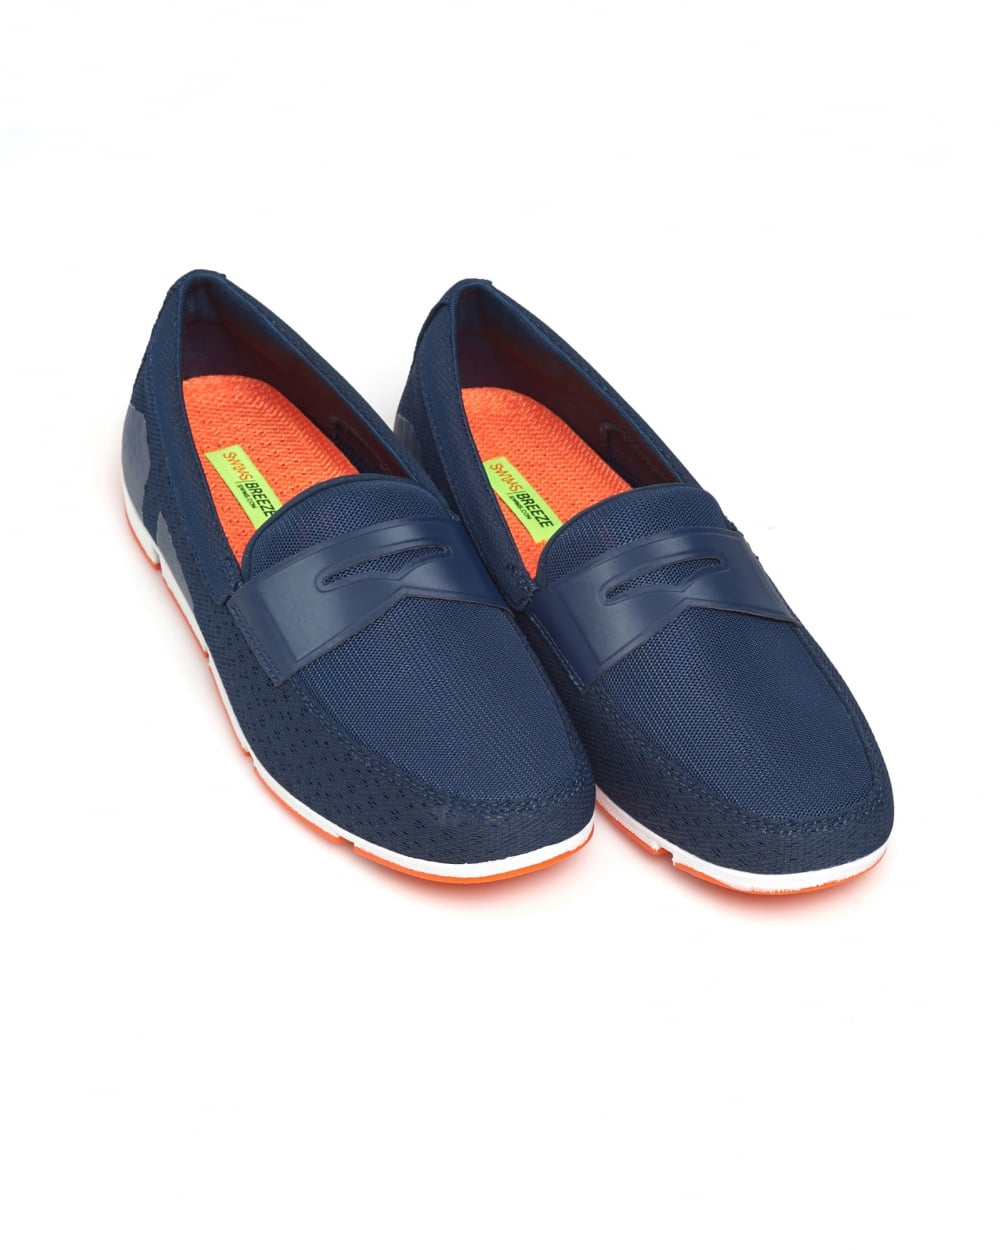 Swims Mens Breeze Penny Loafer, Navy Blue Shoes